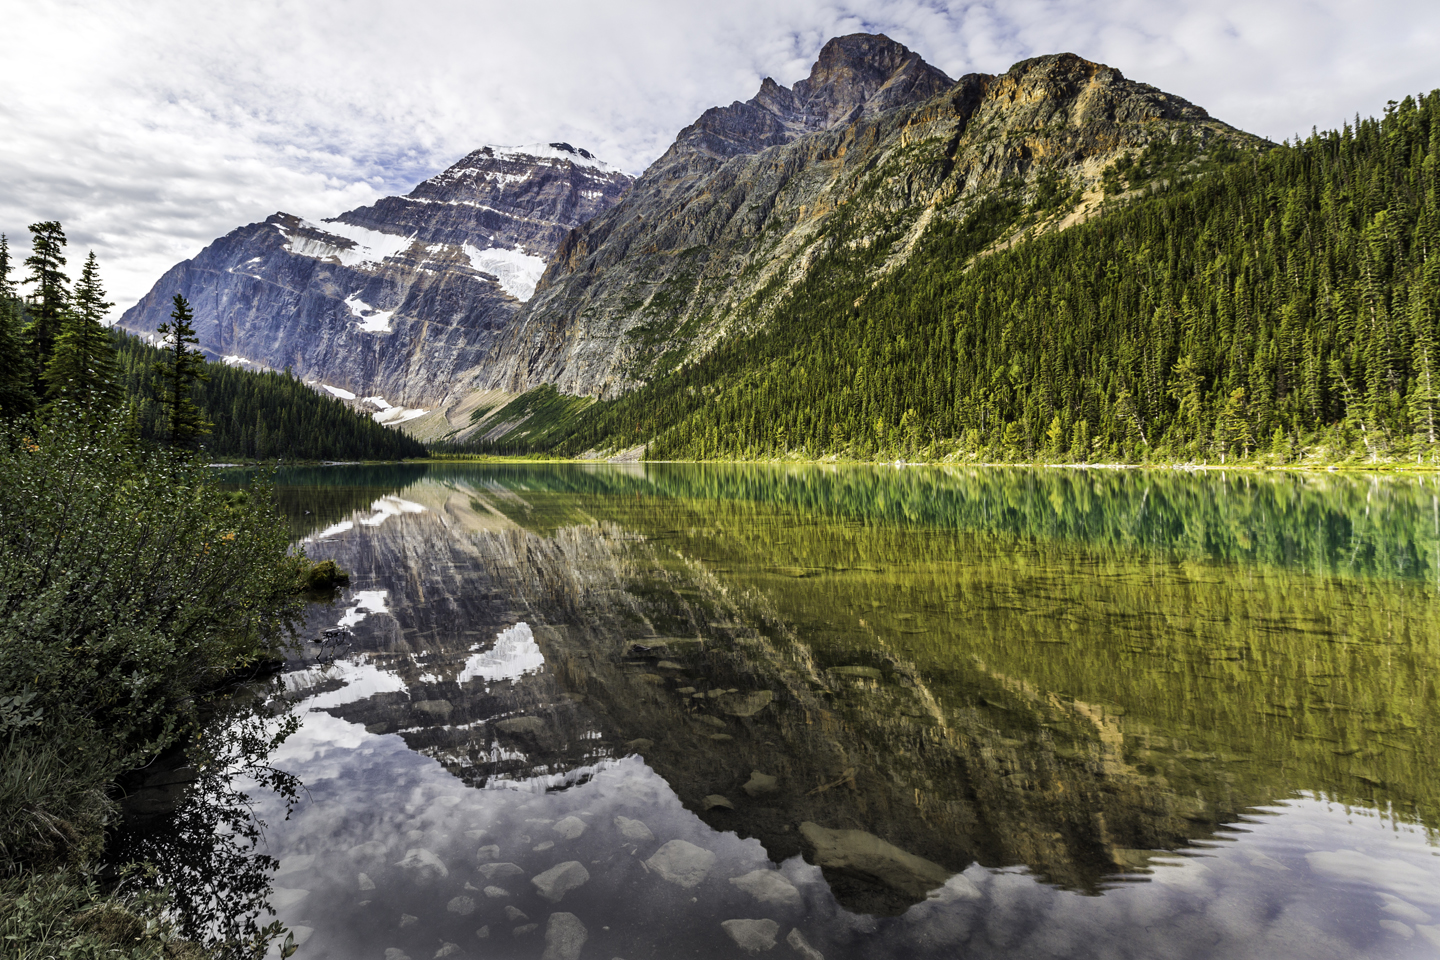 Lake Cavell Reflection